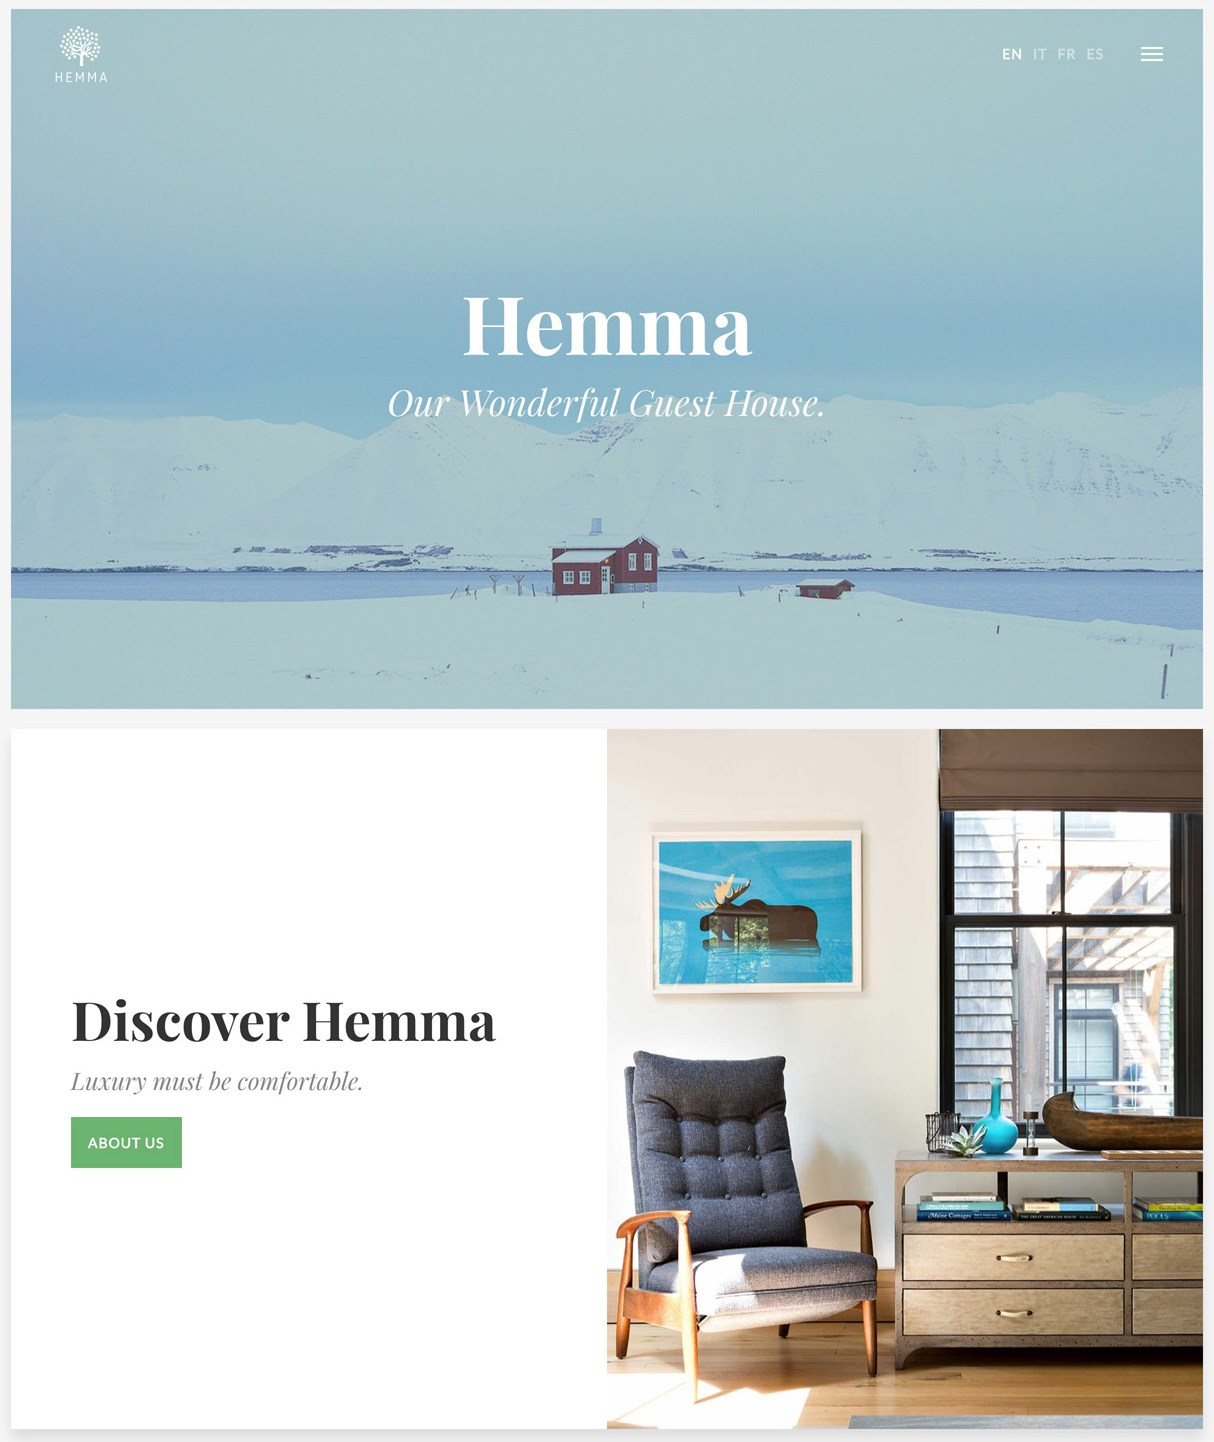 Hemma property rental wordpress theme